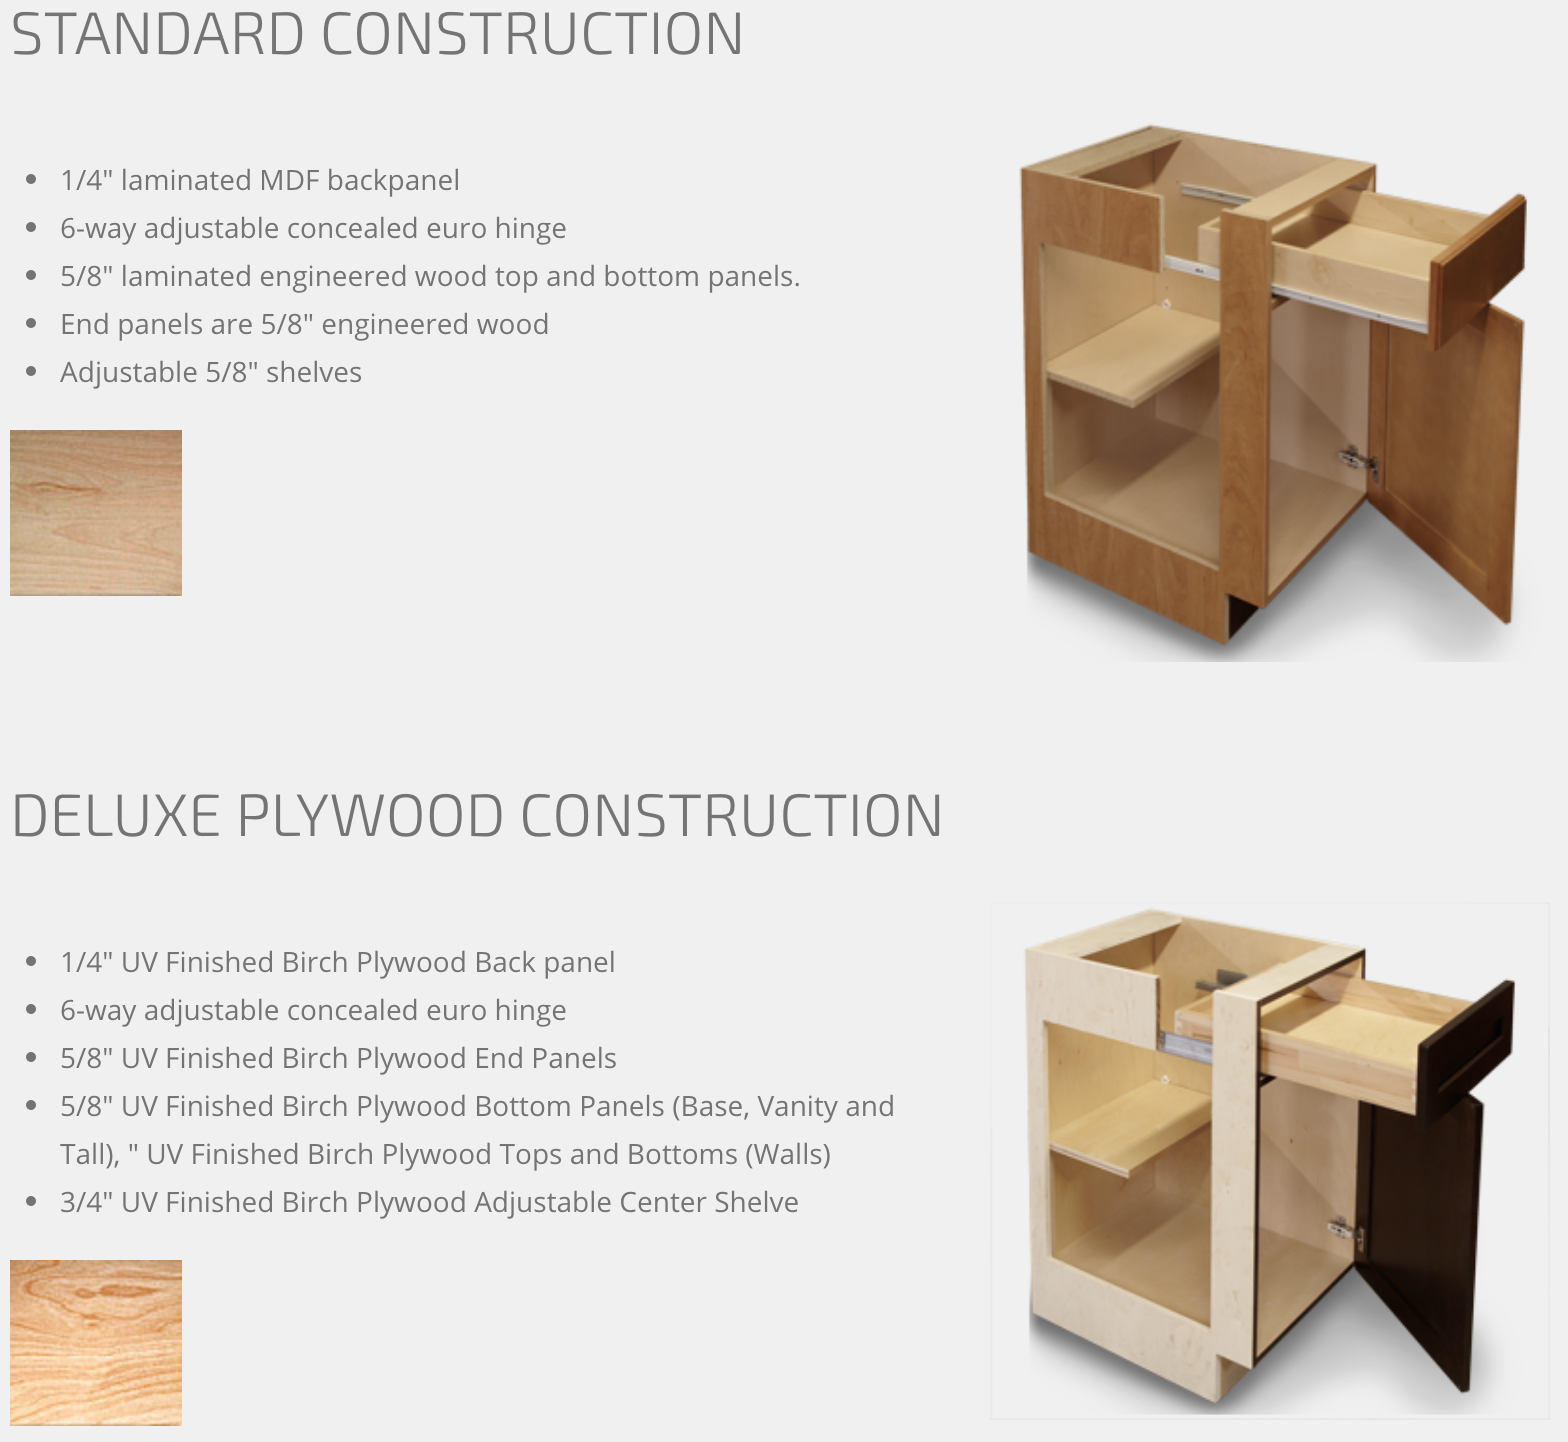 Standard and Deluxe Plywood Construction